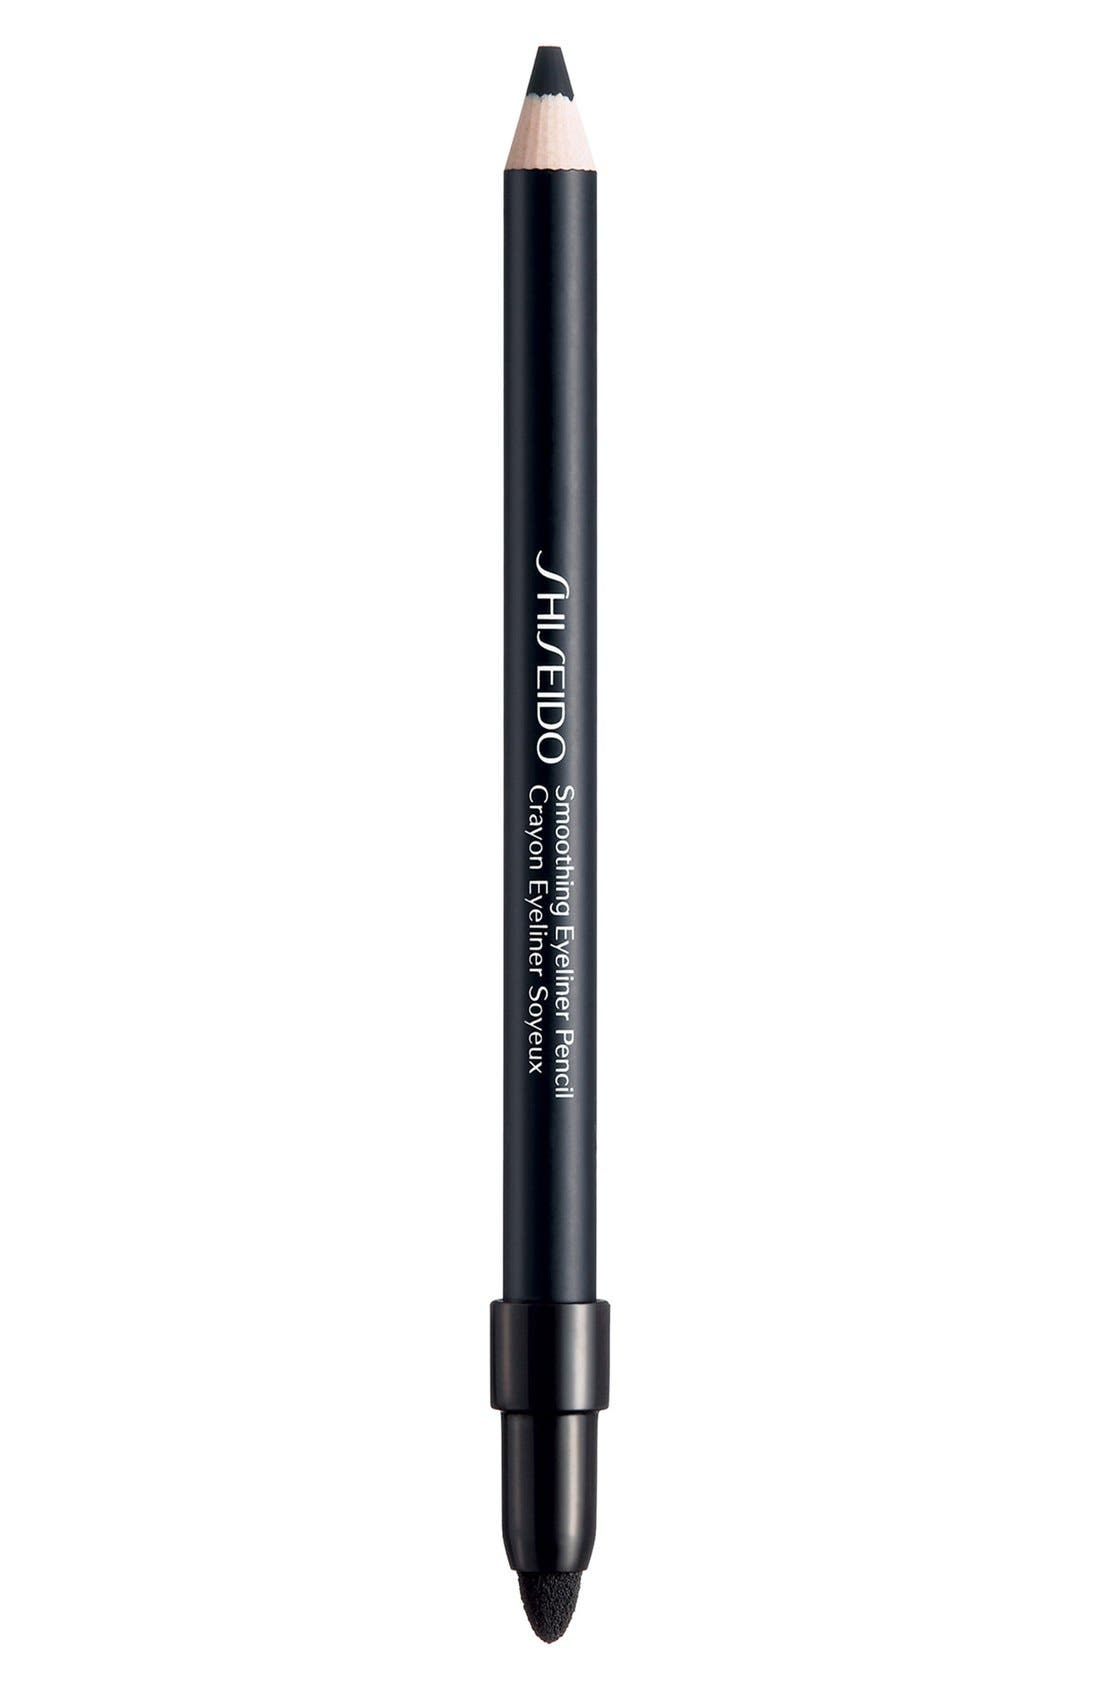 'The Makeup' Smoothing Eyeliner Pencil,                             Main thumbnail 1, color,                             001